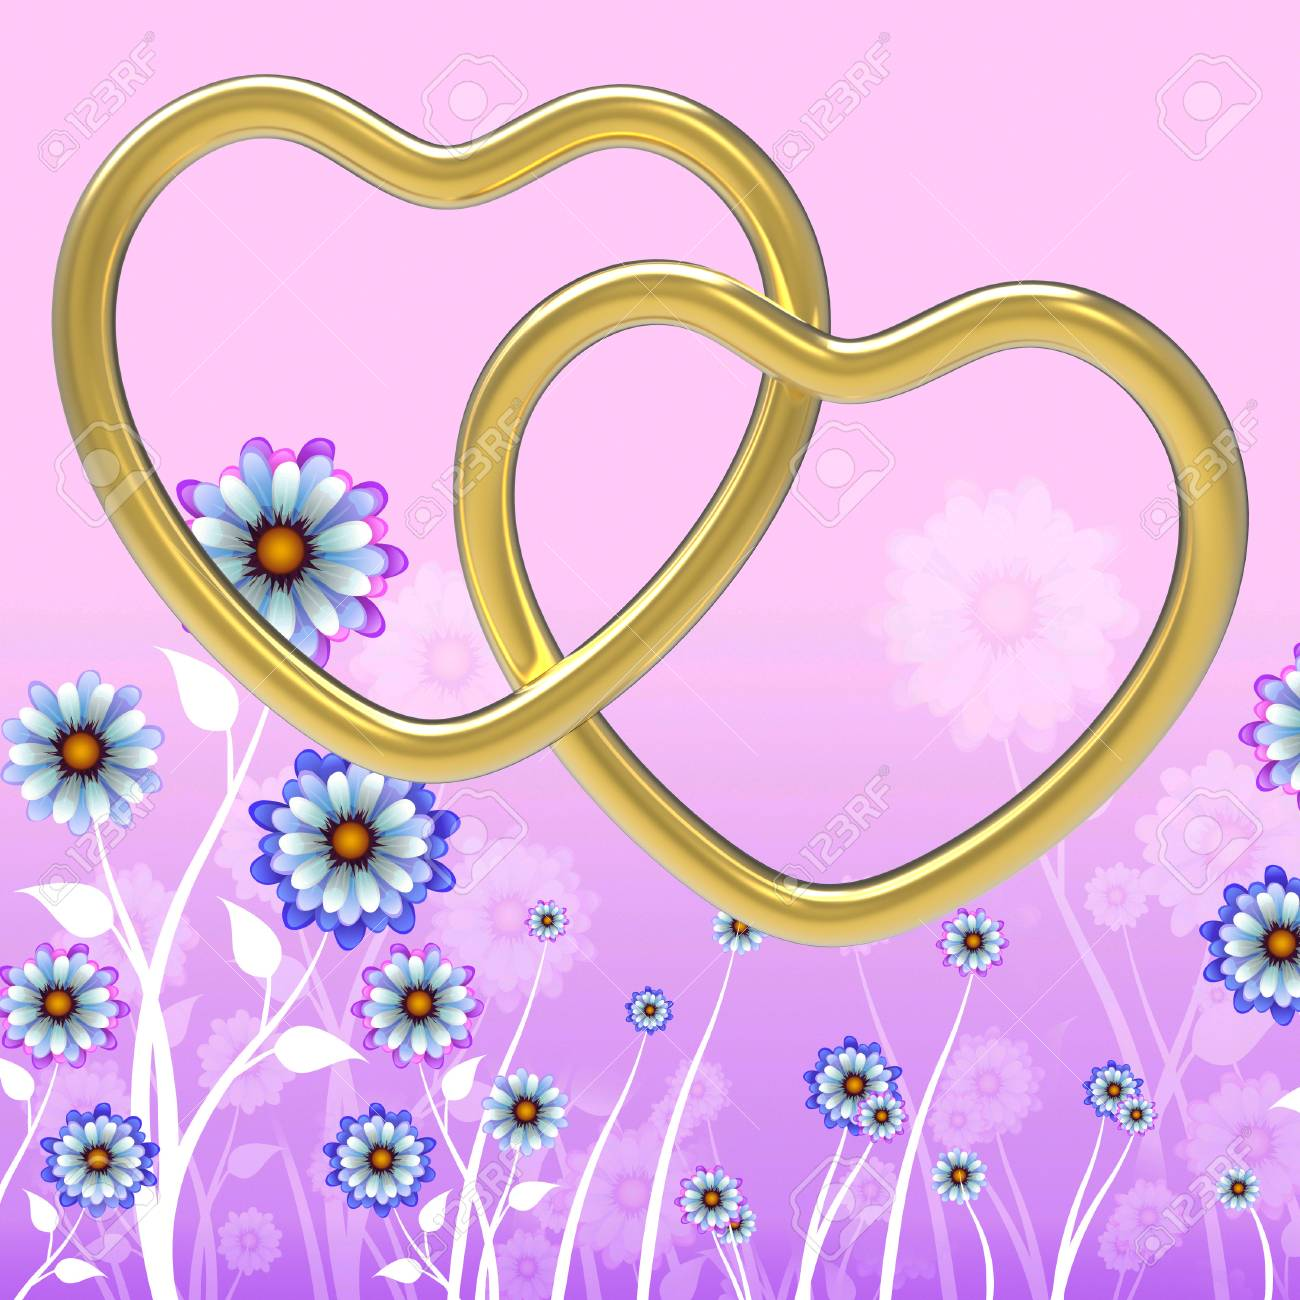 Wedding Rings Meaning Heart Shape And Jewelry Stock Photo, Picture ...